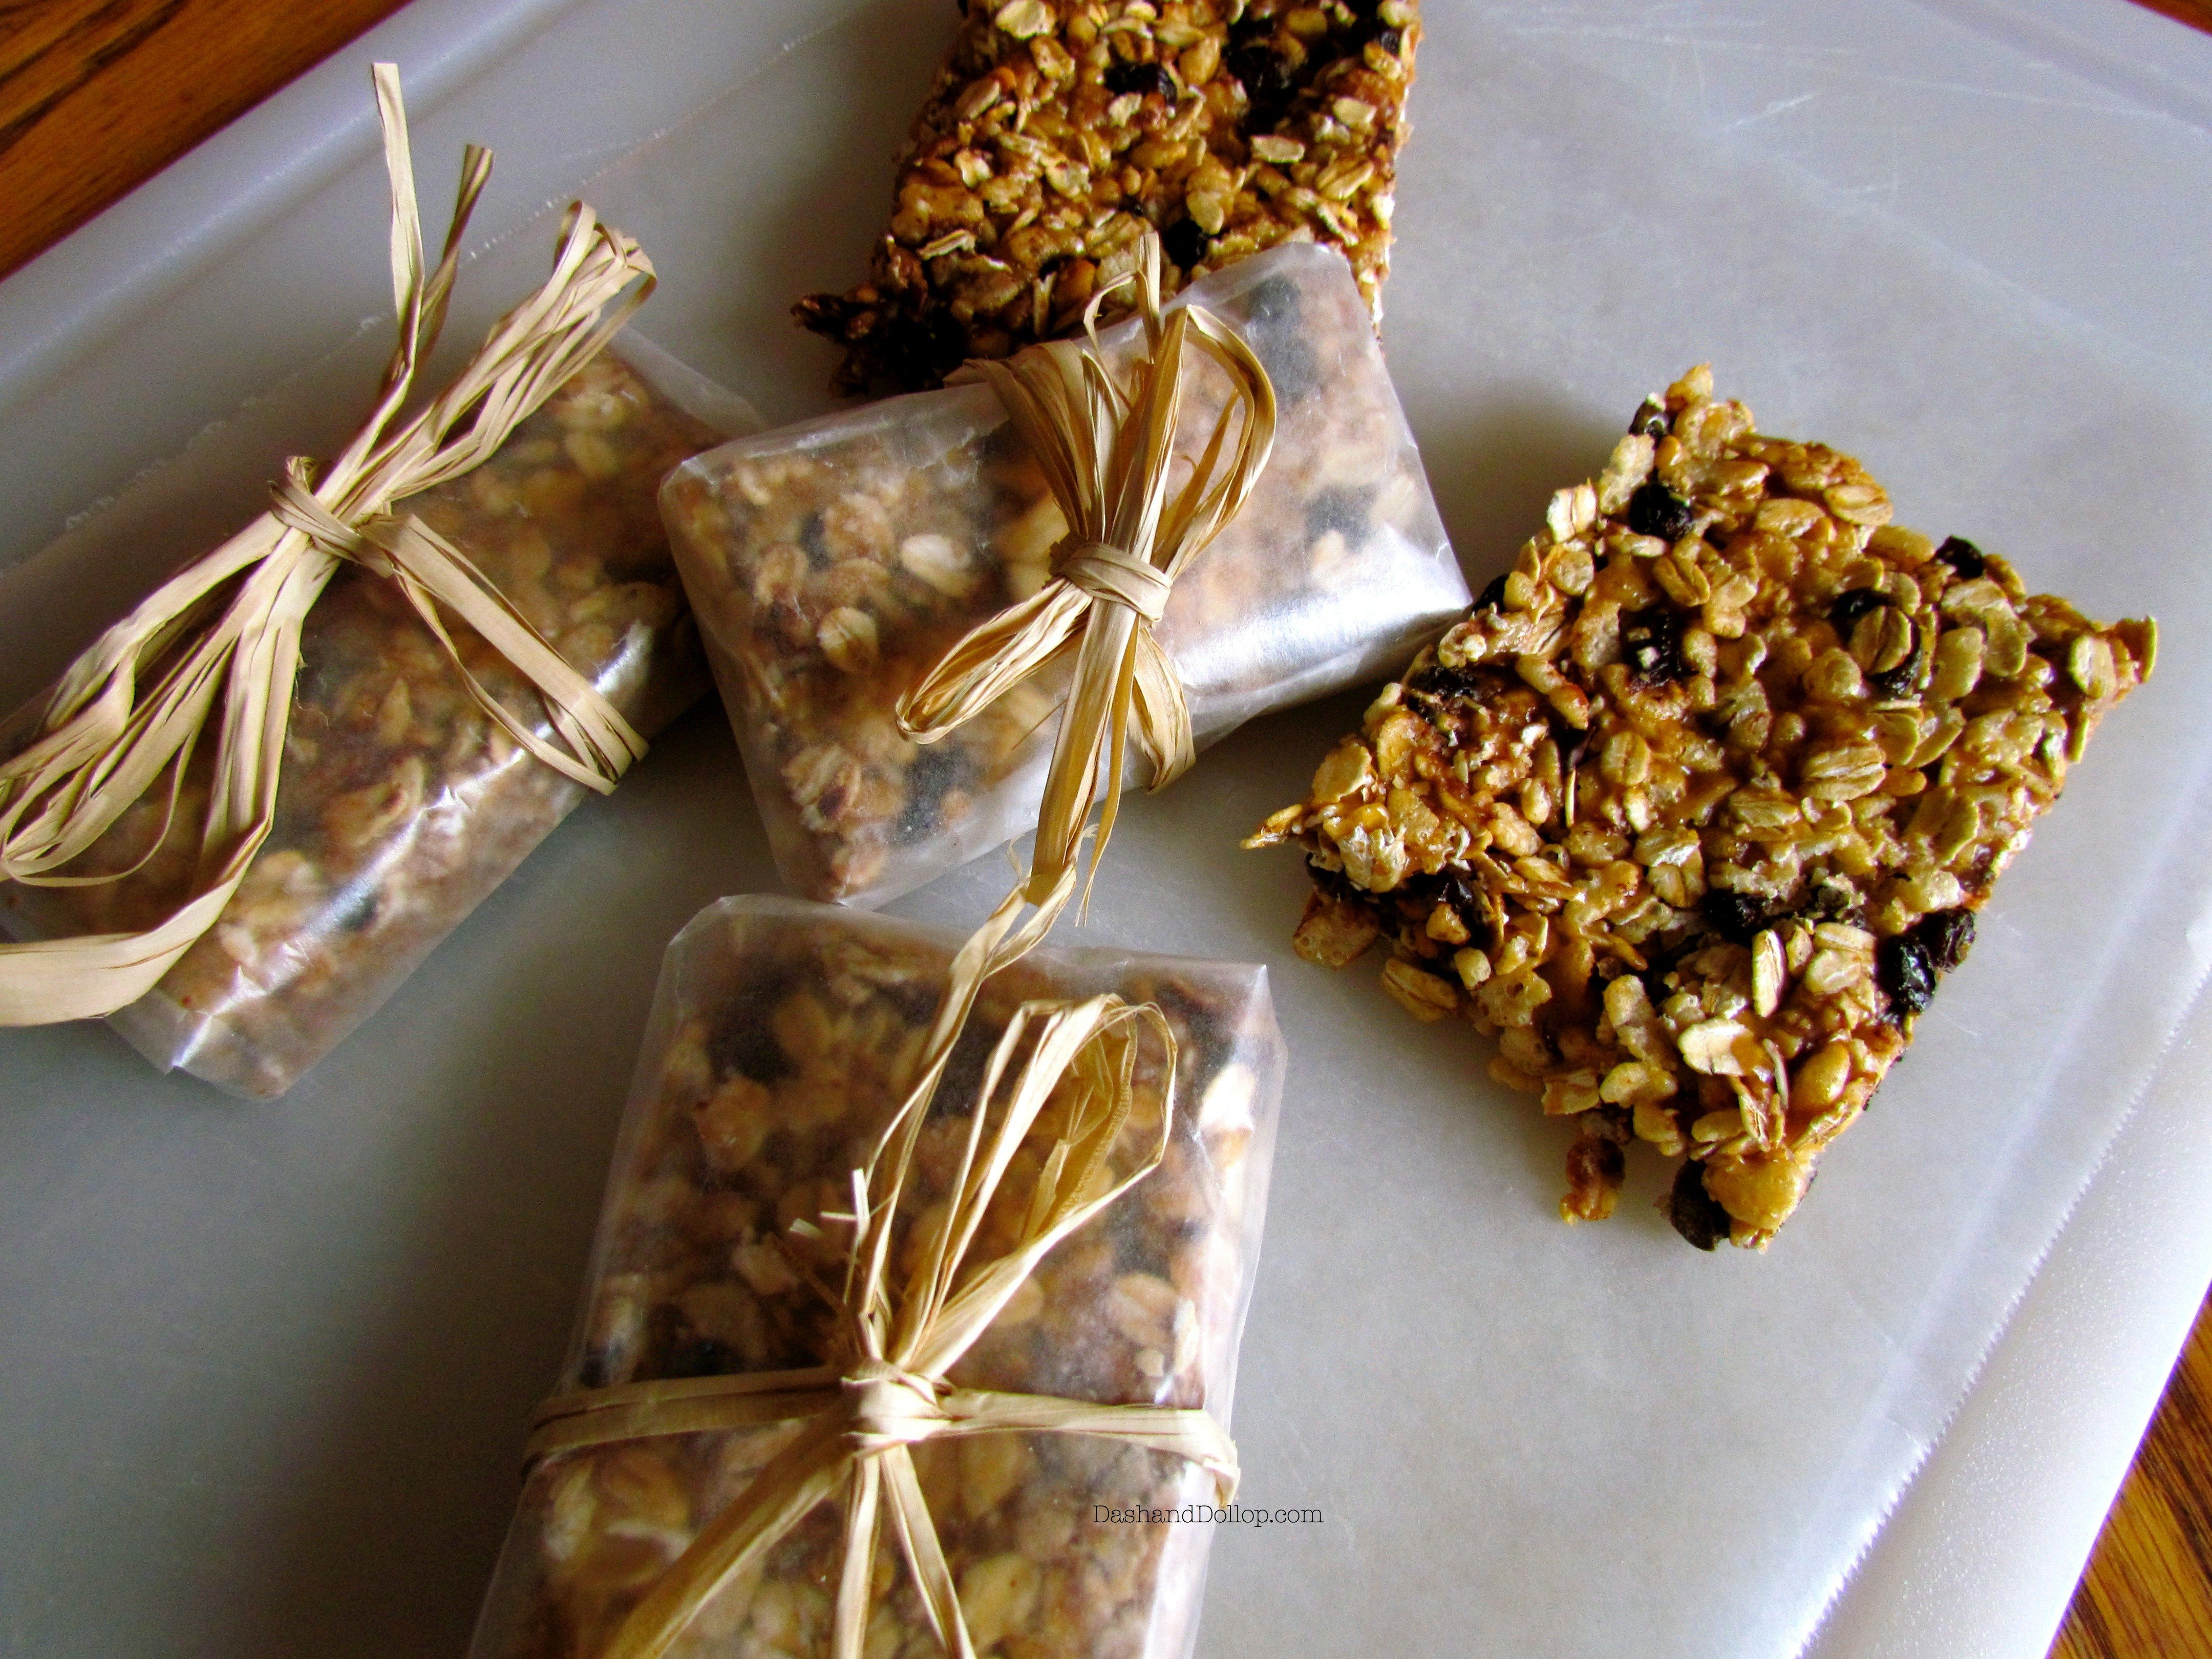 Homemade granola bars. An easy grab and go breakfast or afternoon snack.